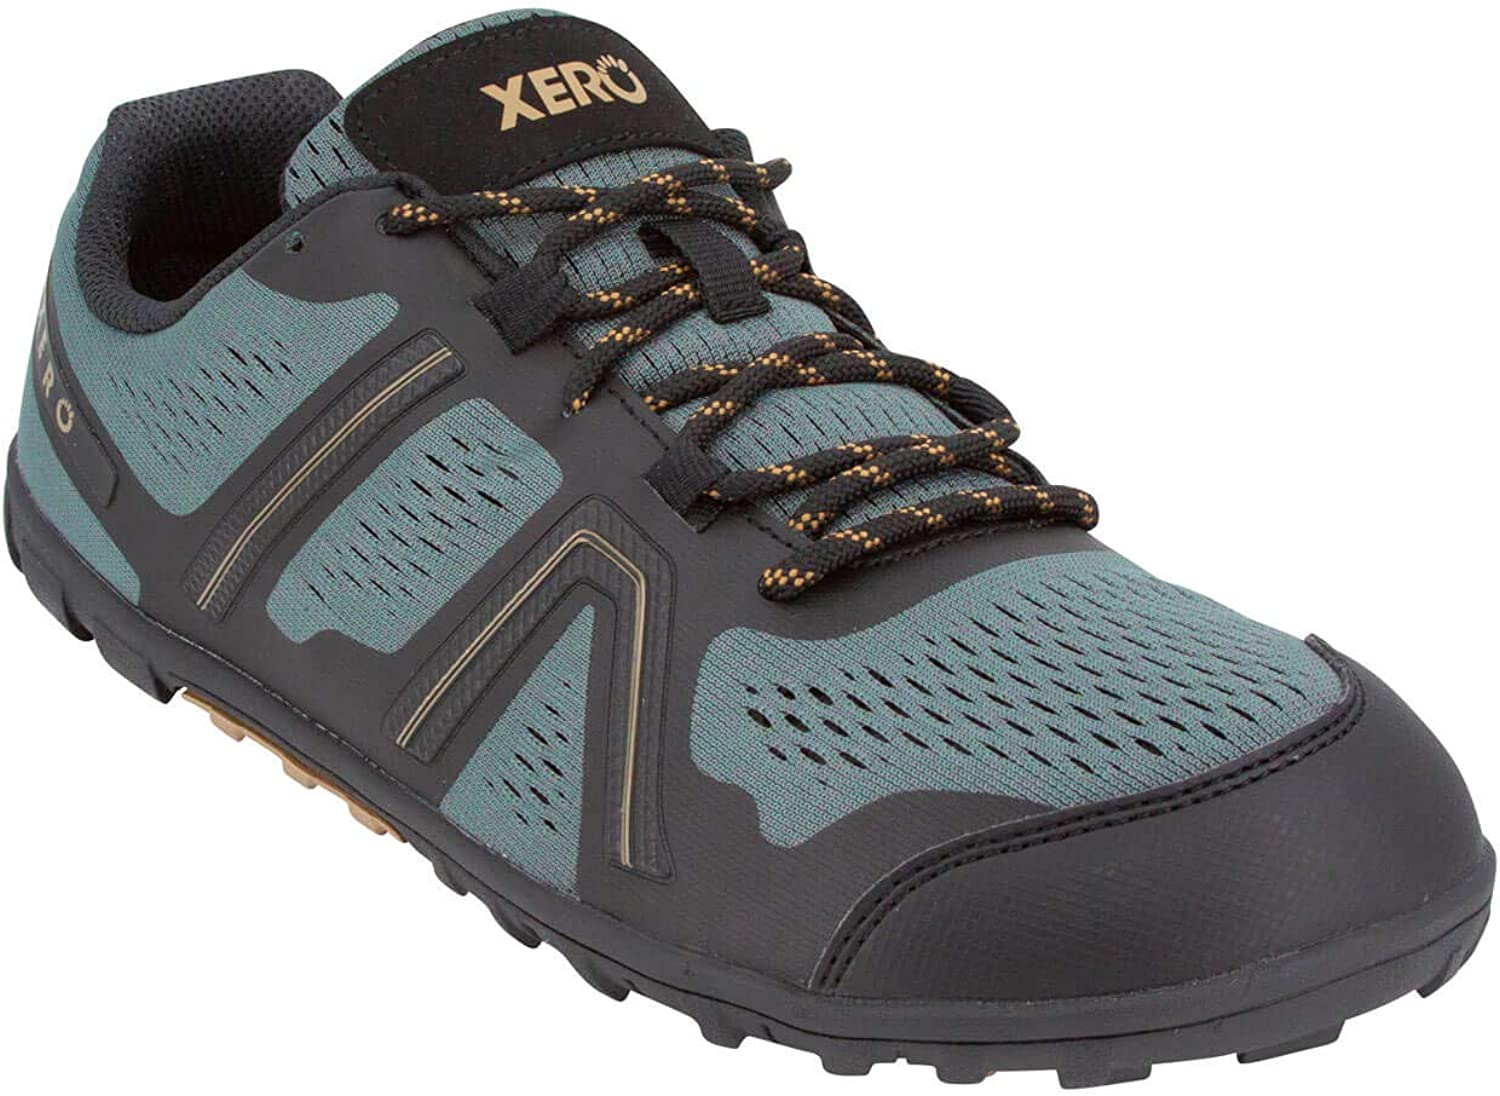 Xero Shoes Mesa Trail - Men's Lightweight Barefoot-Inspired Minimalist Trail Running Shoe. Zero Drop Sneaker